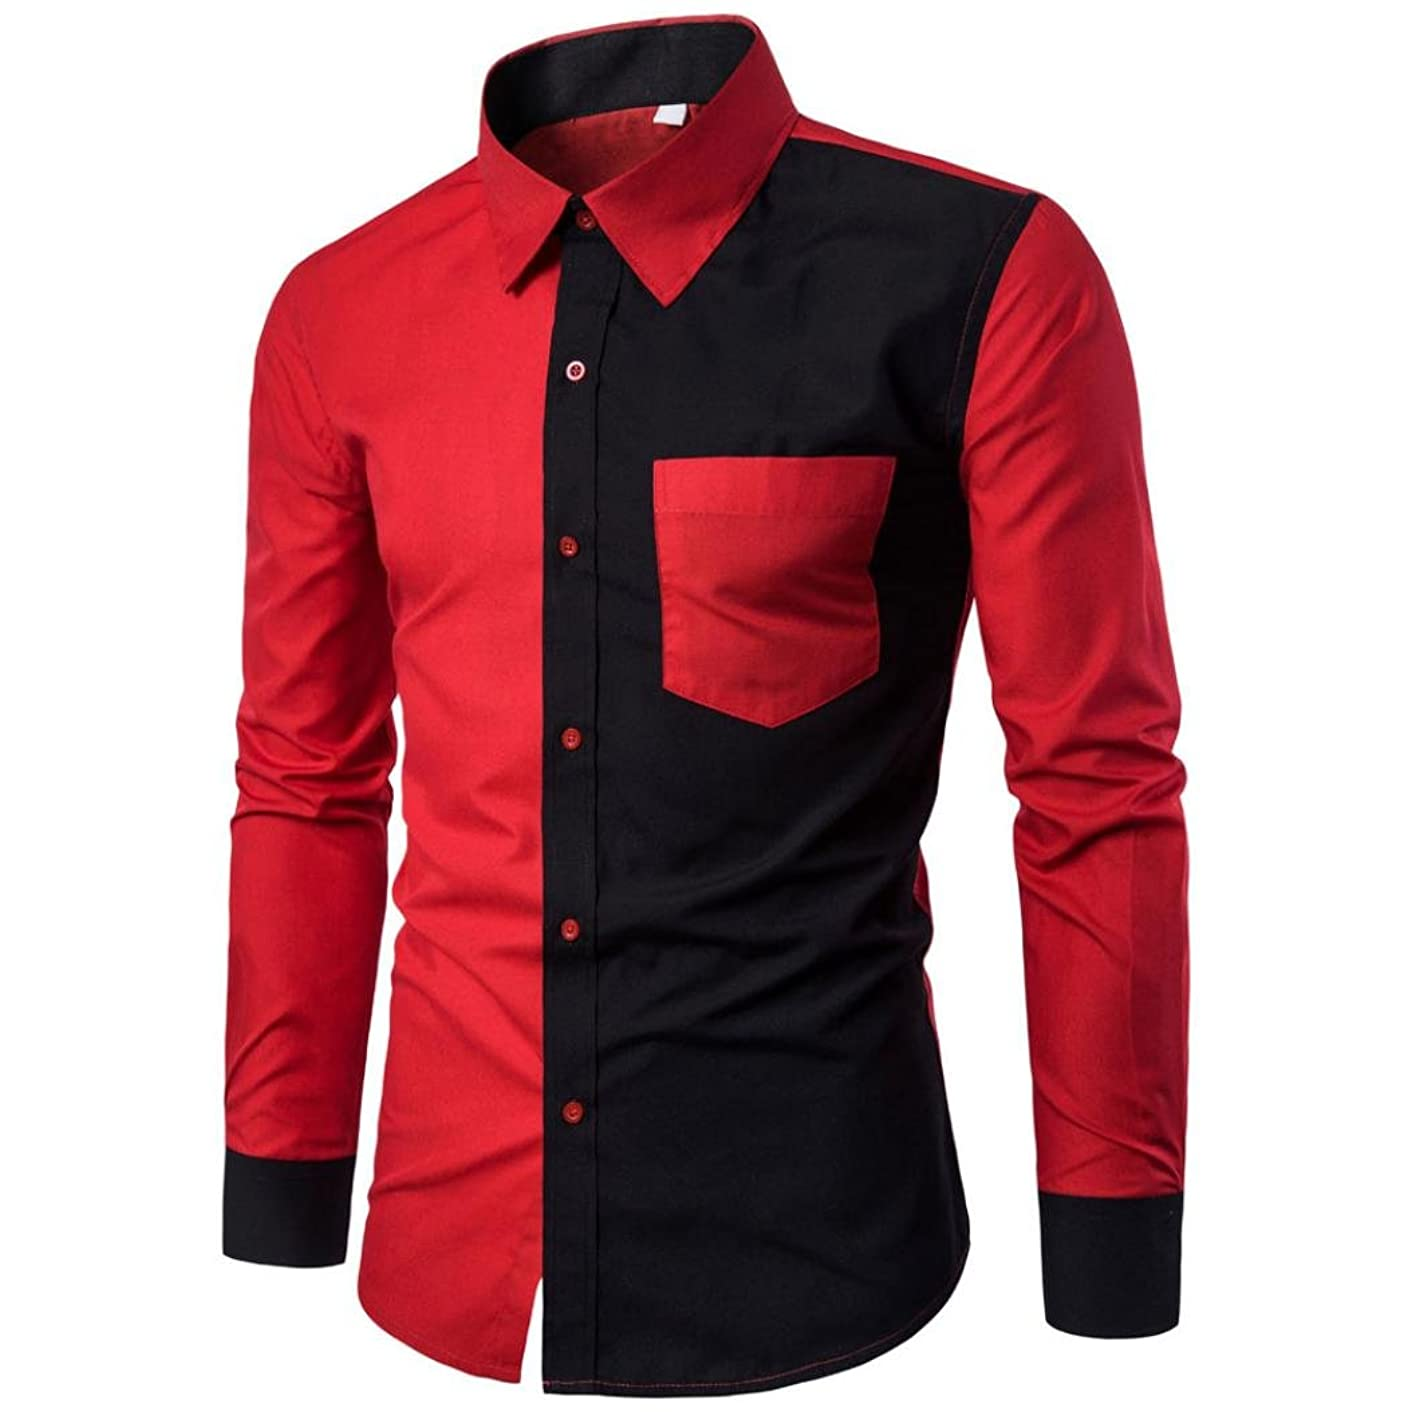 BCDshop Mens Fashion Splice Shirts Slim Fit Casual Long Sleeve Blouse Tops